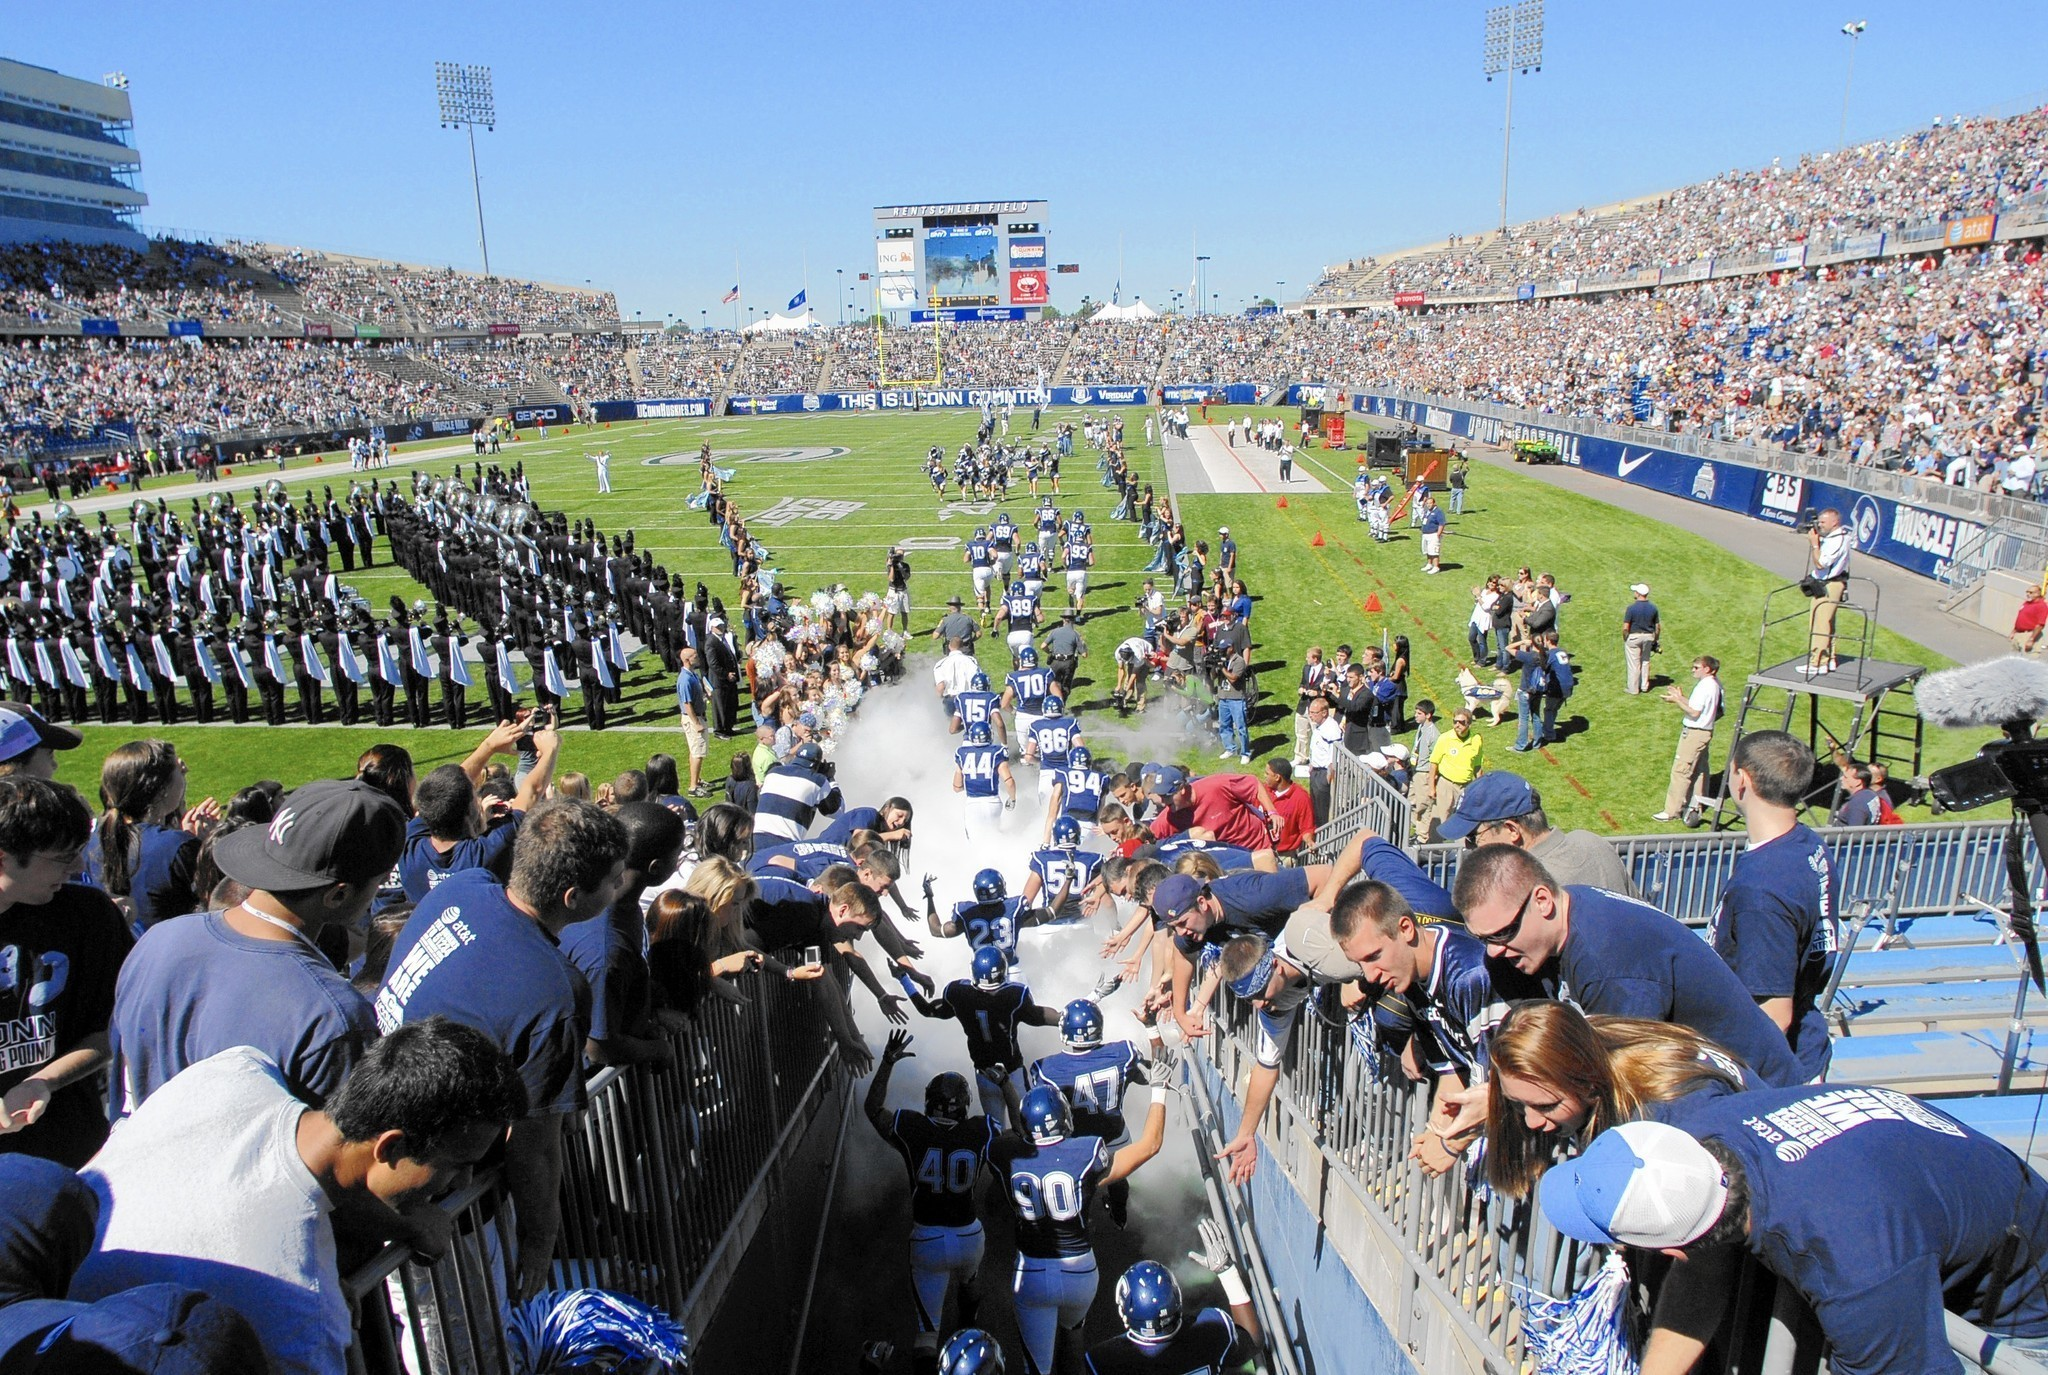 Hc-uconn-football-tickets-0724-20160723